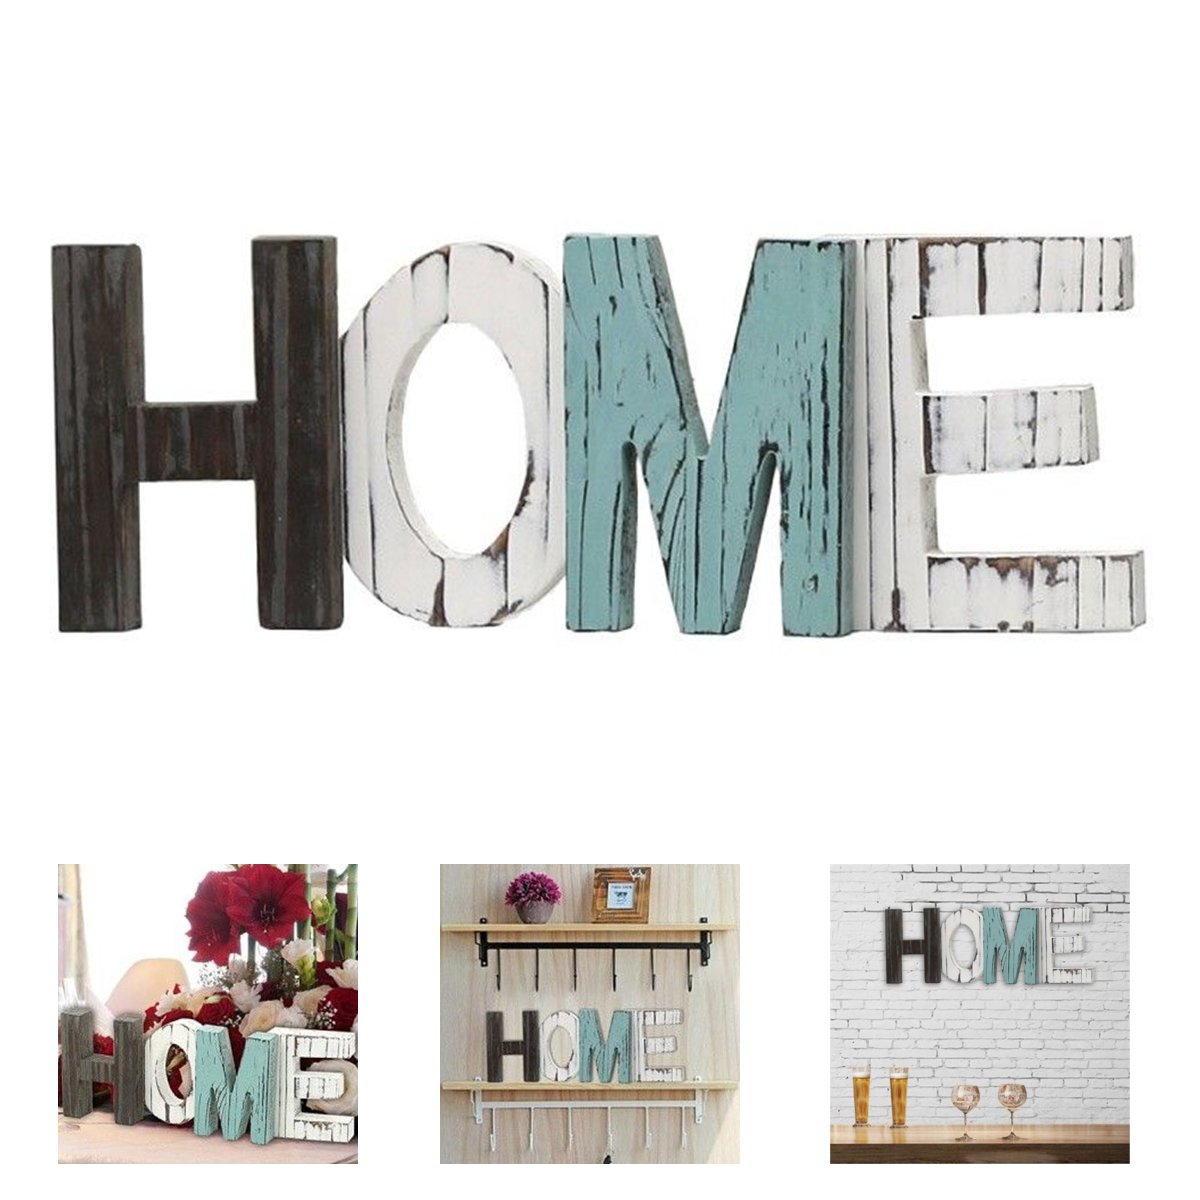 Large Decorative Wooden Letters.Us 17 49 33 Off Wooden Furniture Home Decorative Letters Large Wooden Letter Alphabet Wall Hanging Wedding Party Decoration Sign Freestanding In